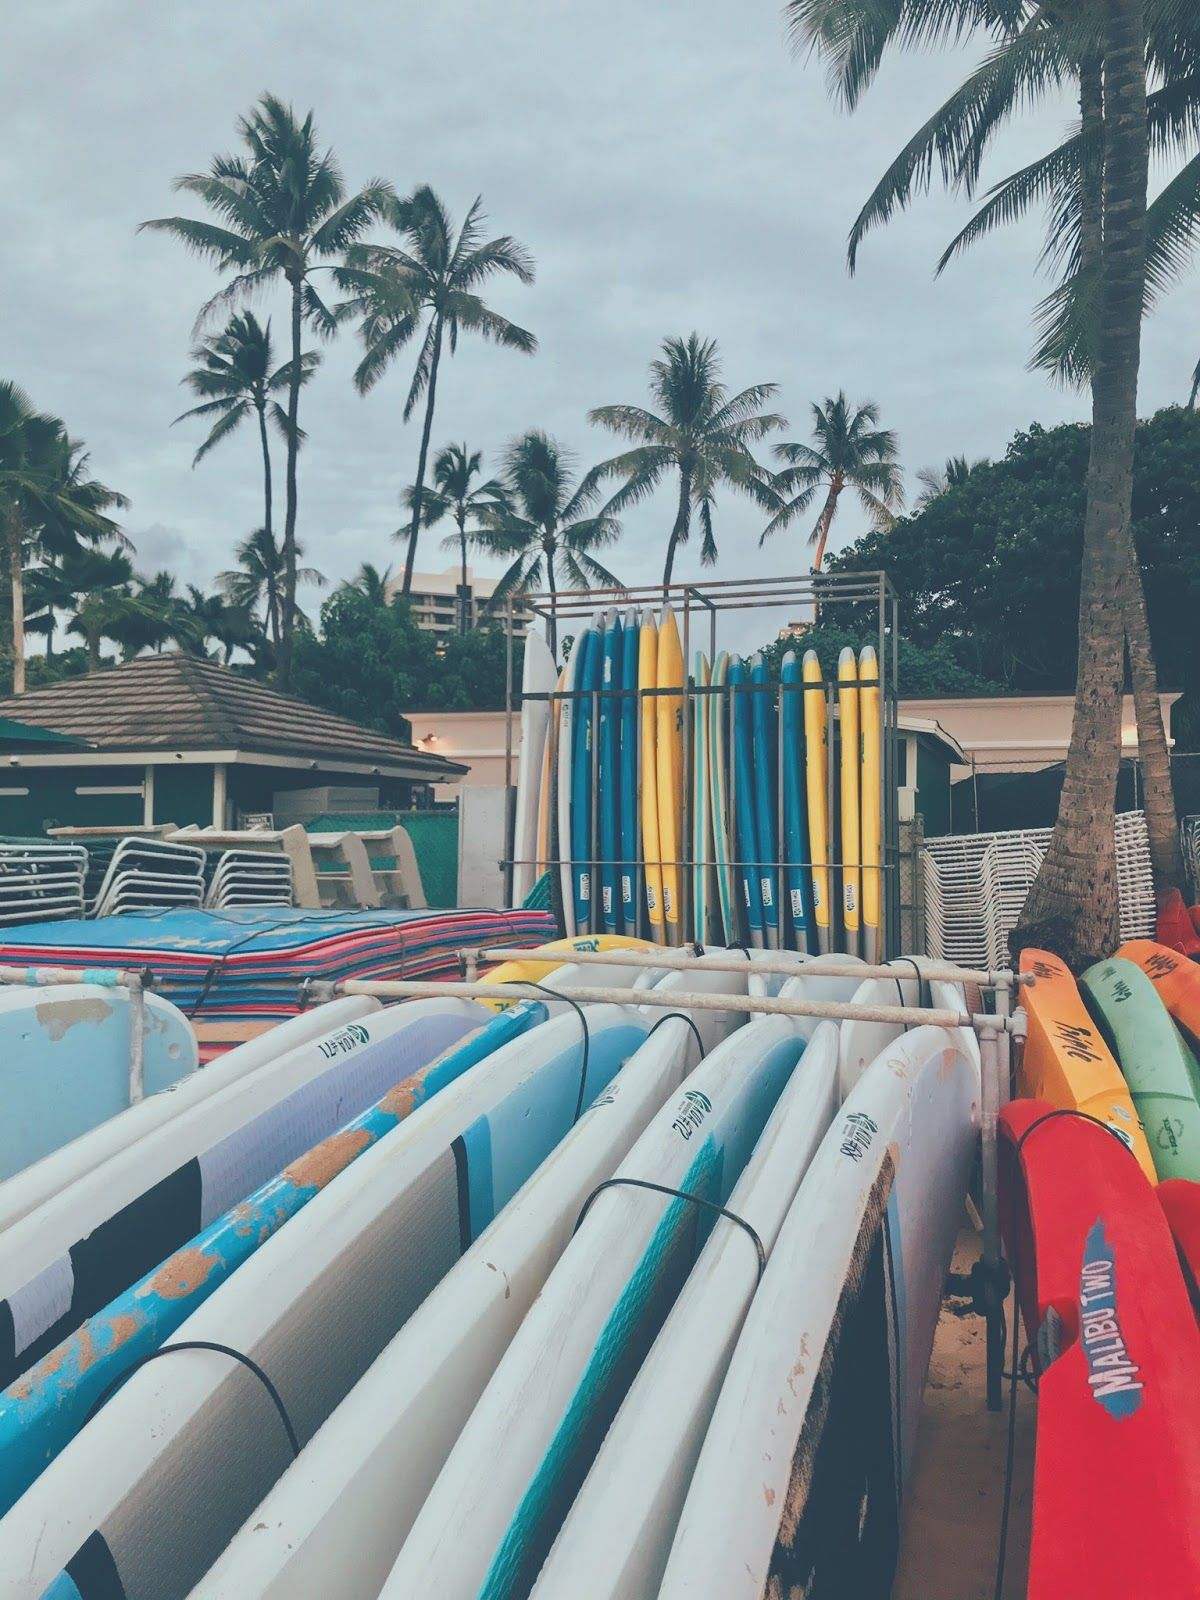 Duke Kahanamoku was a Native Hawaiian competition swimmer who popularized the ancient Hawaiian sport of surfing.  Today he's more commonly referred to as the Father of Surfing.   Have you surfed before?   @kt7e_  #HawaiianRollerCoaster #ILoveHawaii #Aloha #AlohaFriday #MotionOfTheOcean #VacationRentals #SurfsUp #DukeKahanamoku #Surfboards